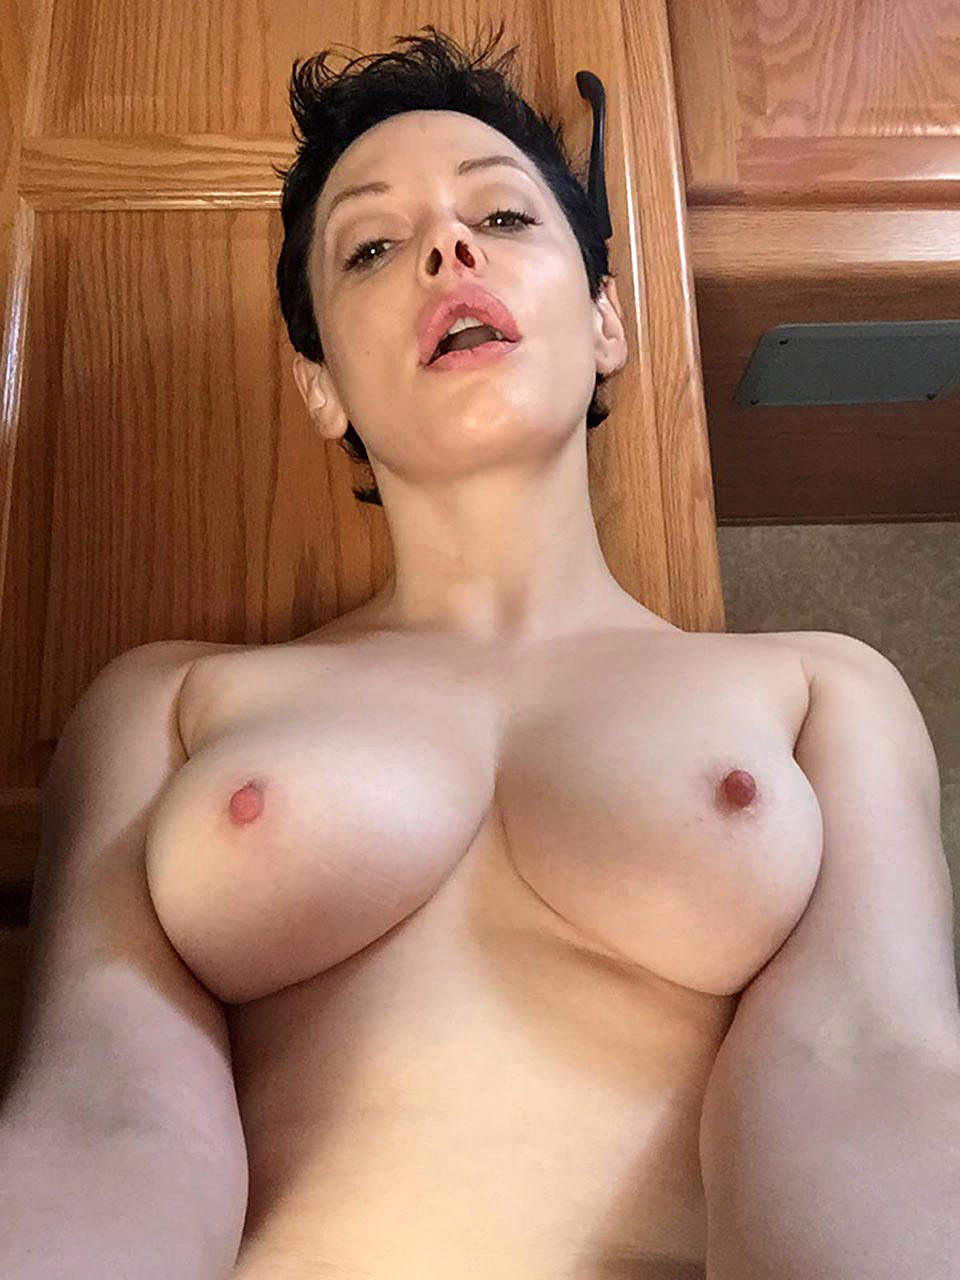 09 Rose Mcgowan New Leaked Nude 2017